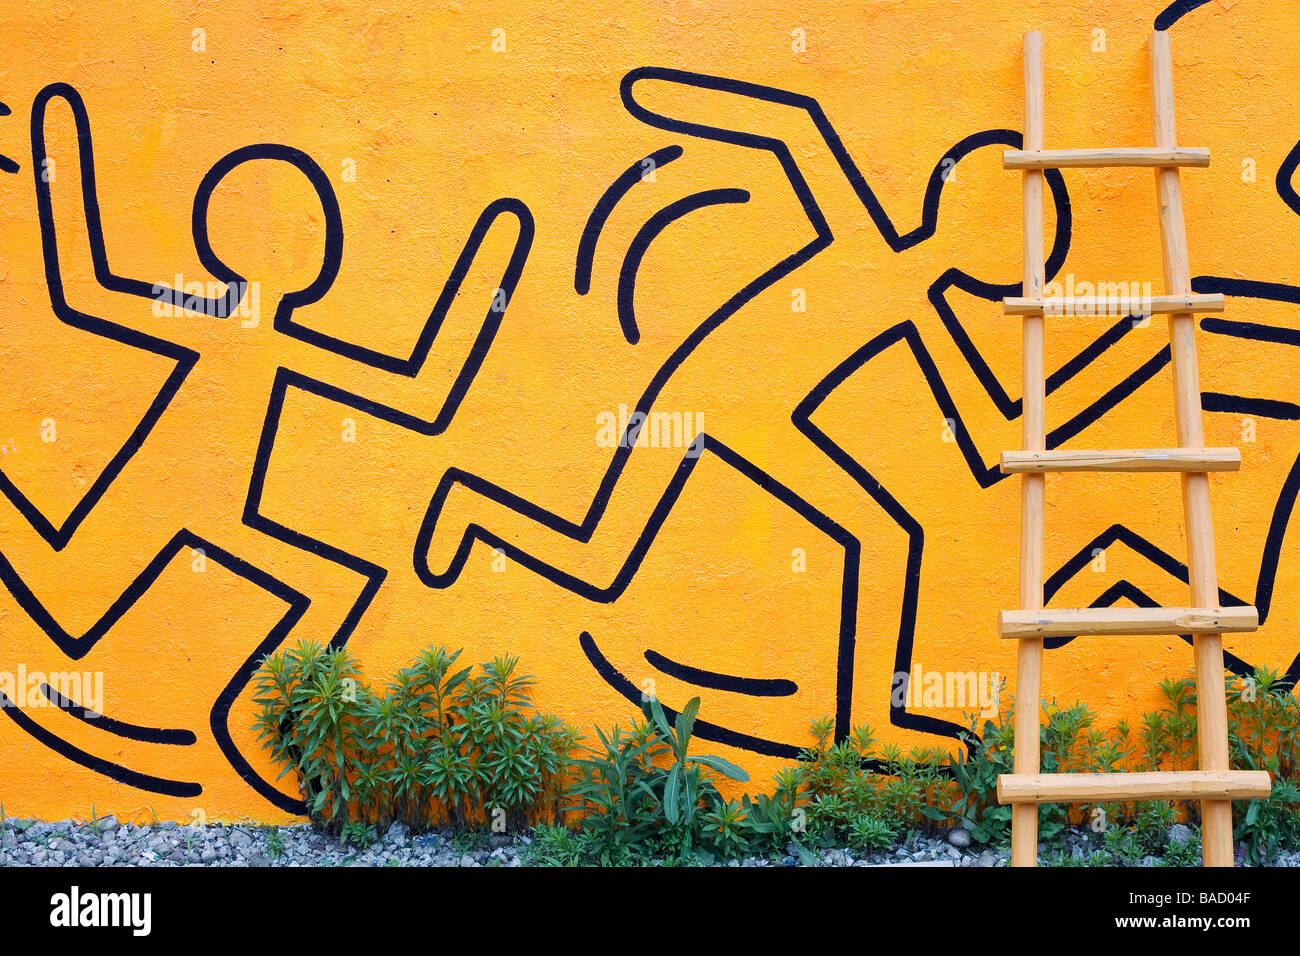 Keith Haring Stock Photos & Keith Haring Stock Images - Alamy